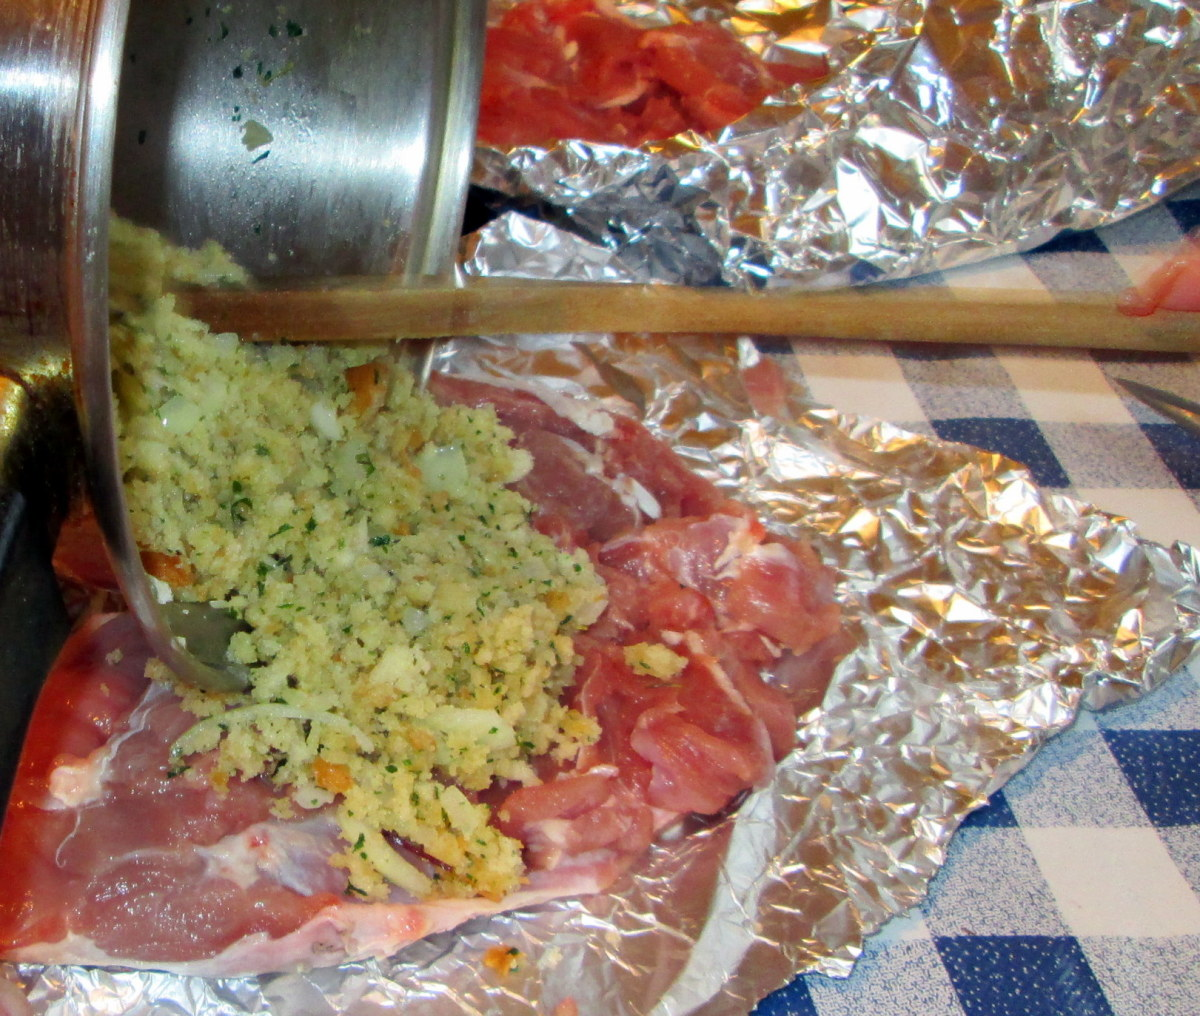 Adding the stuffing to the turkey meat on the tinfoil.